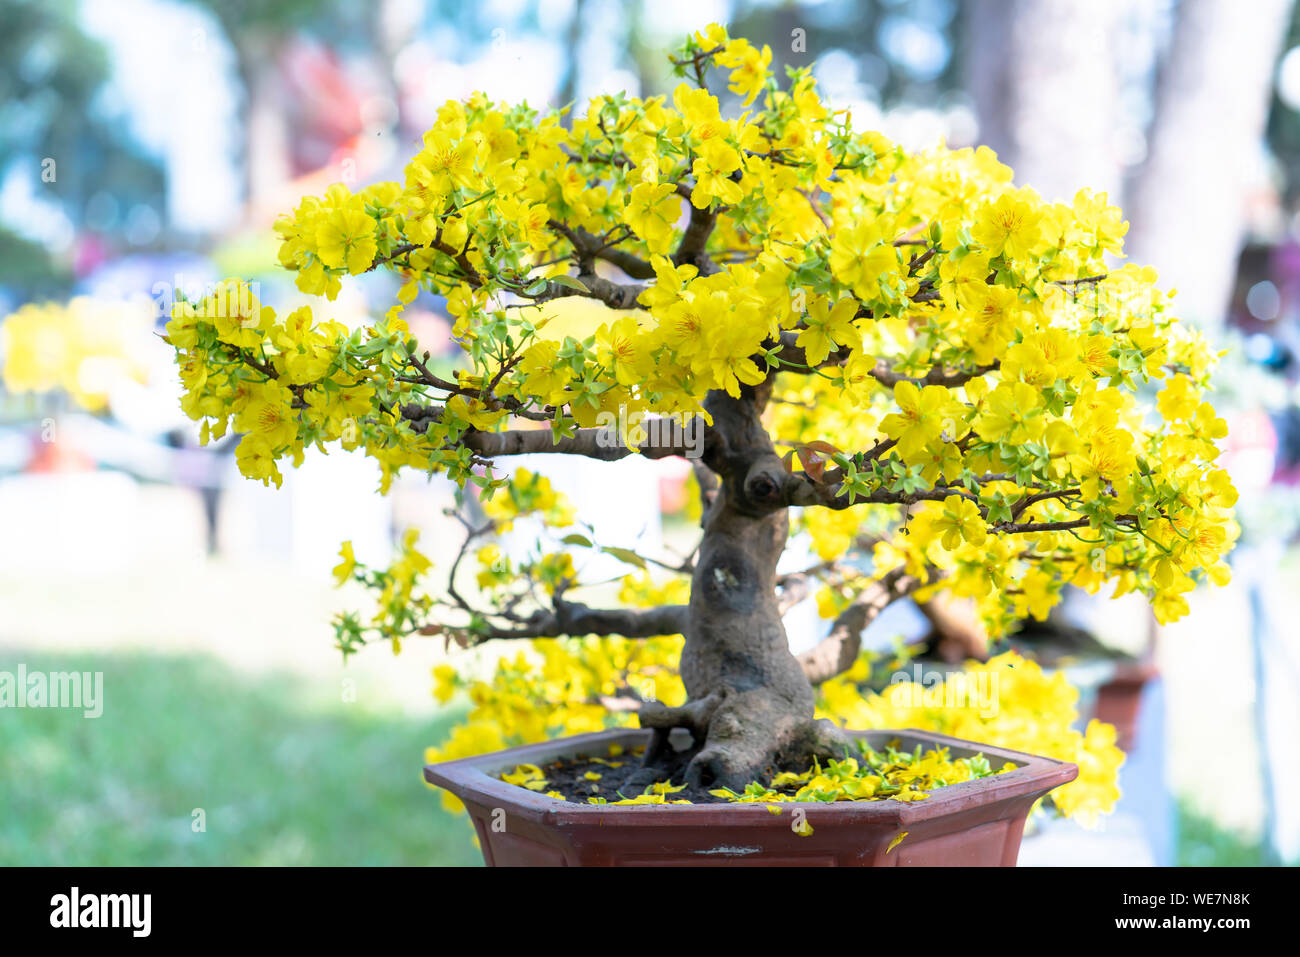 Apricot bonsai tree blooming with yellow flowering branches curving create unique beauty. This is a special wrong tree symbolizes luck, prosperity Stock Photo